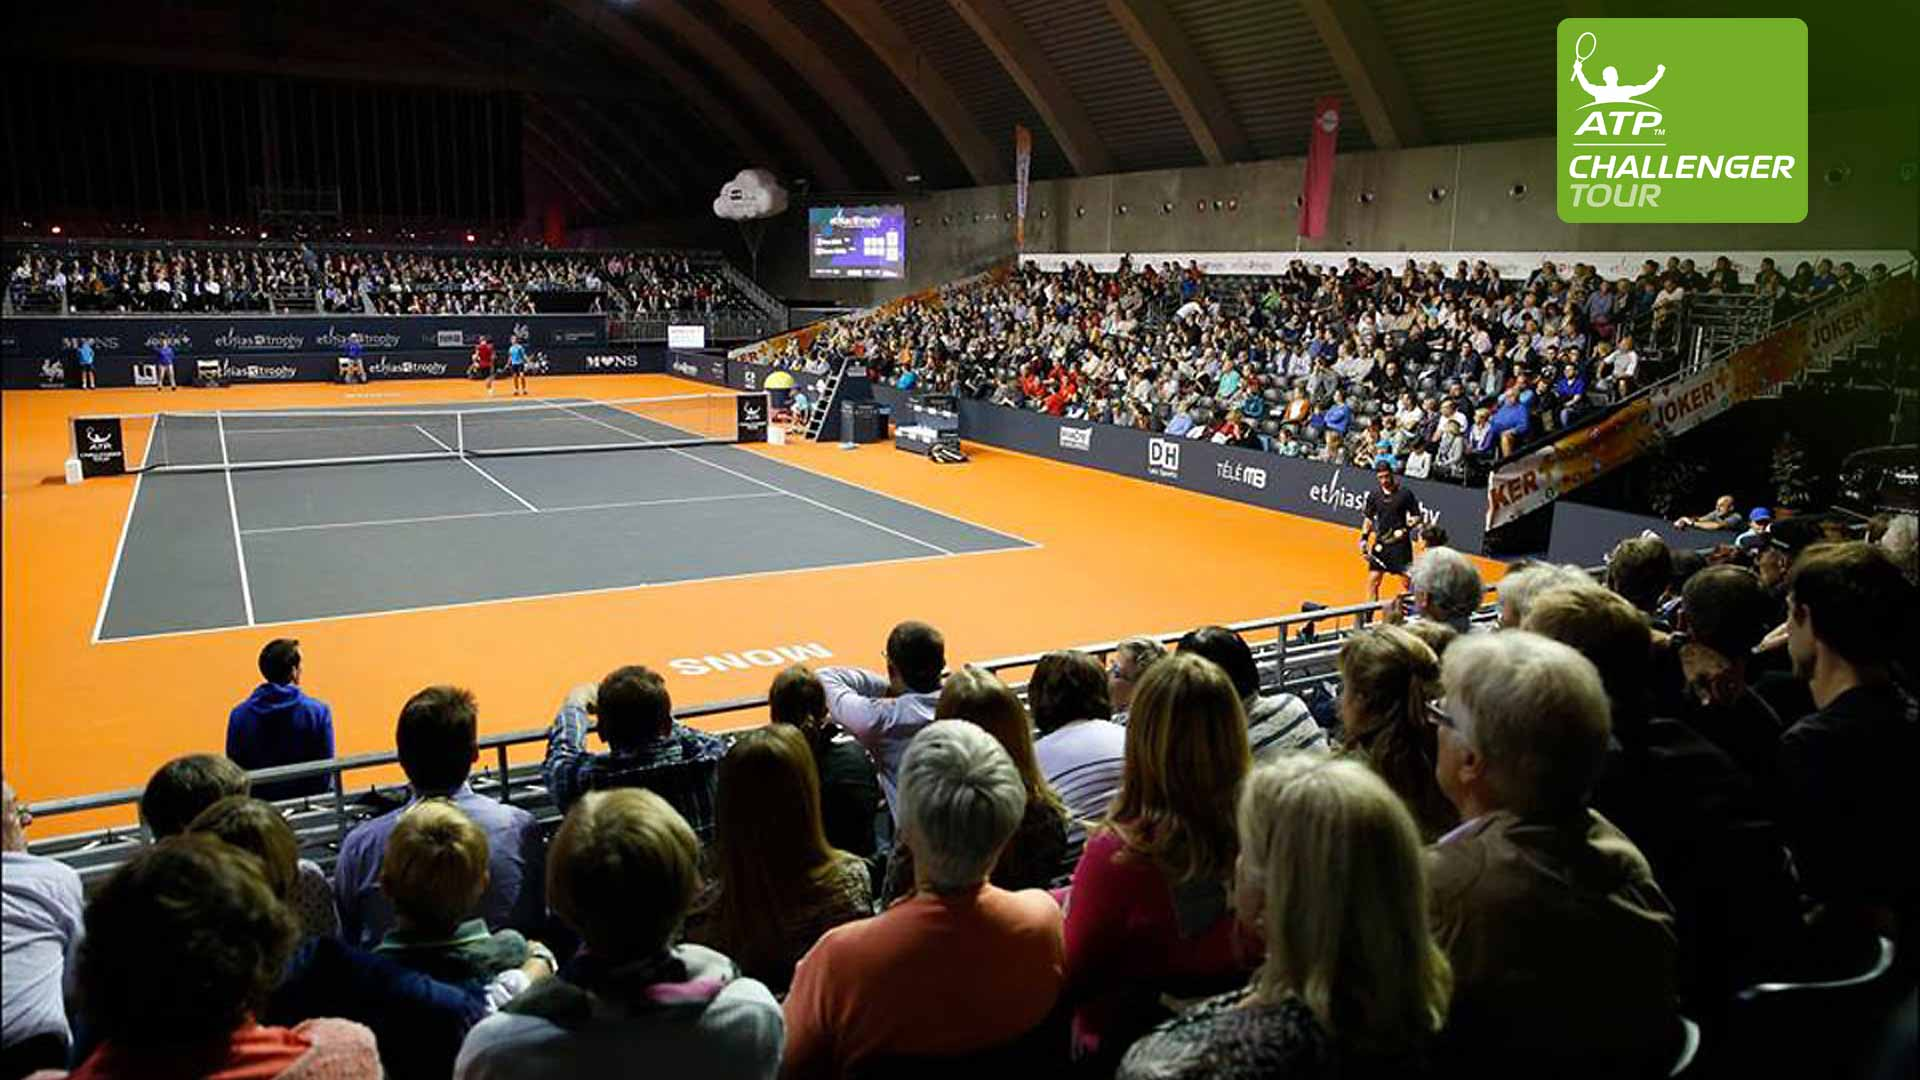 The ATP Challenger Tour event in Mons enjoys packed crowds each year.